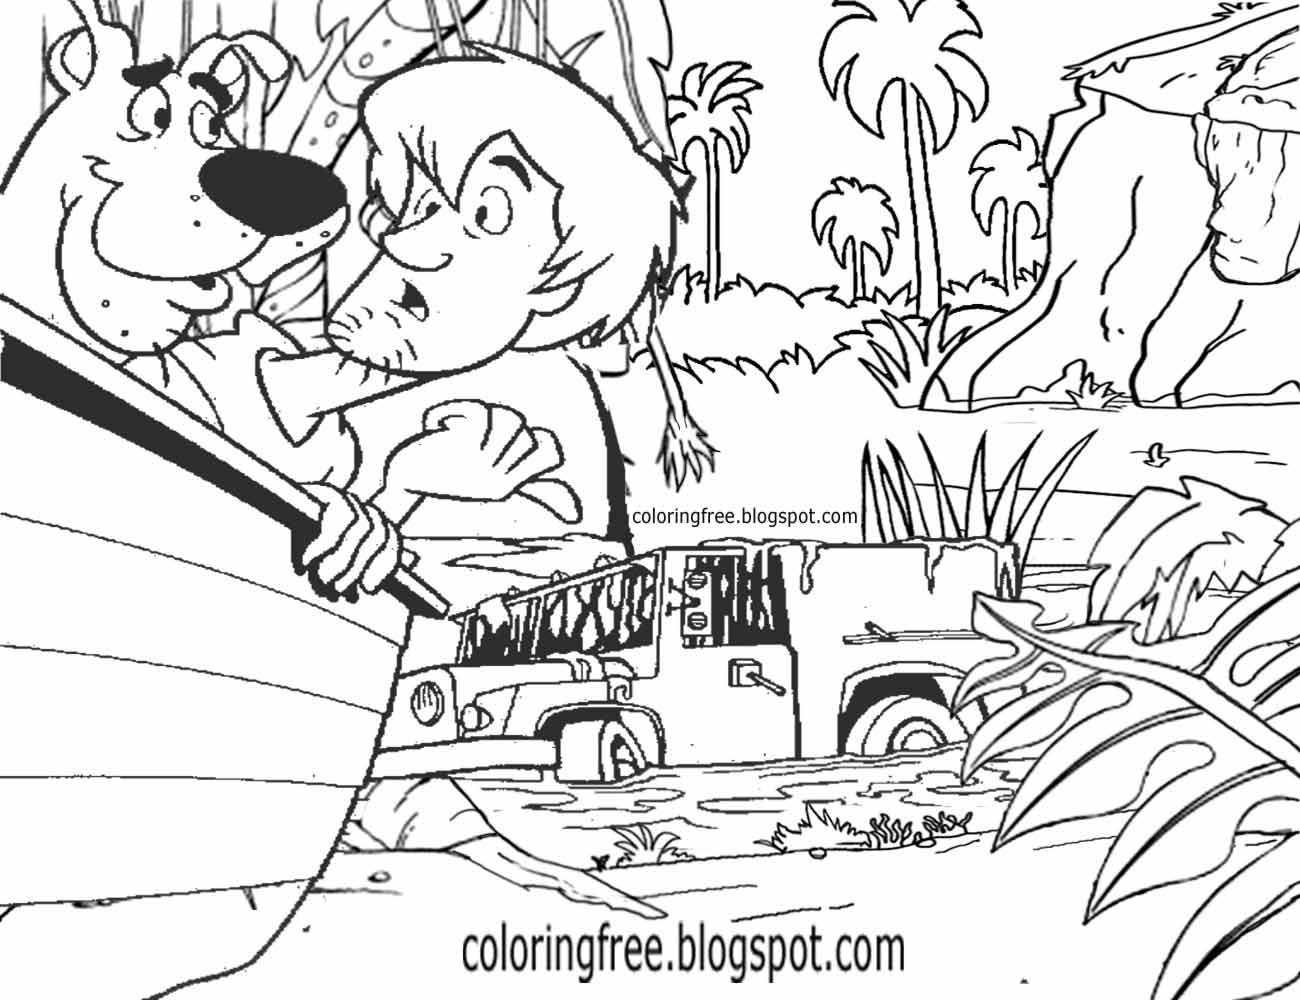 The 13 Ghosts Of Scooby Doo Coloring Pages